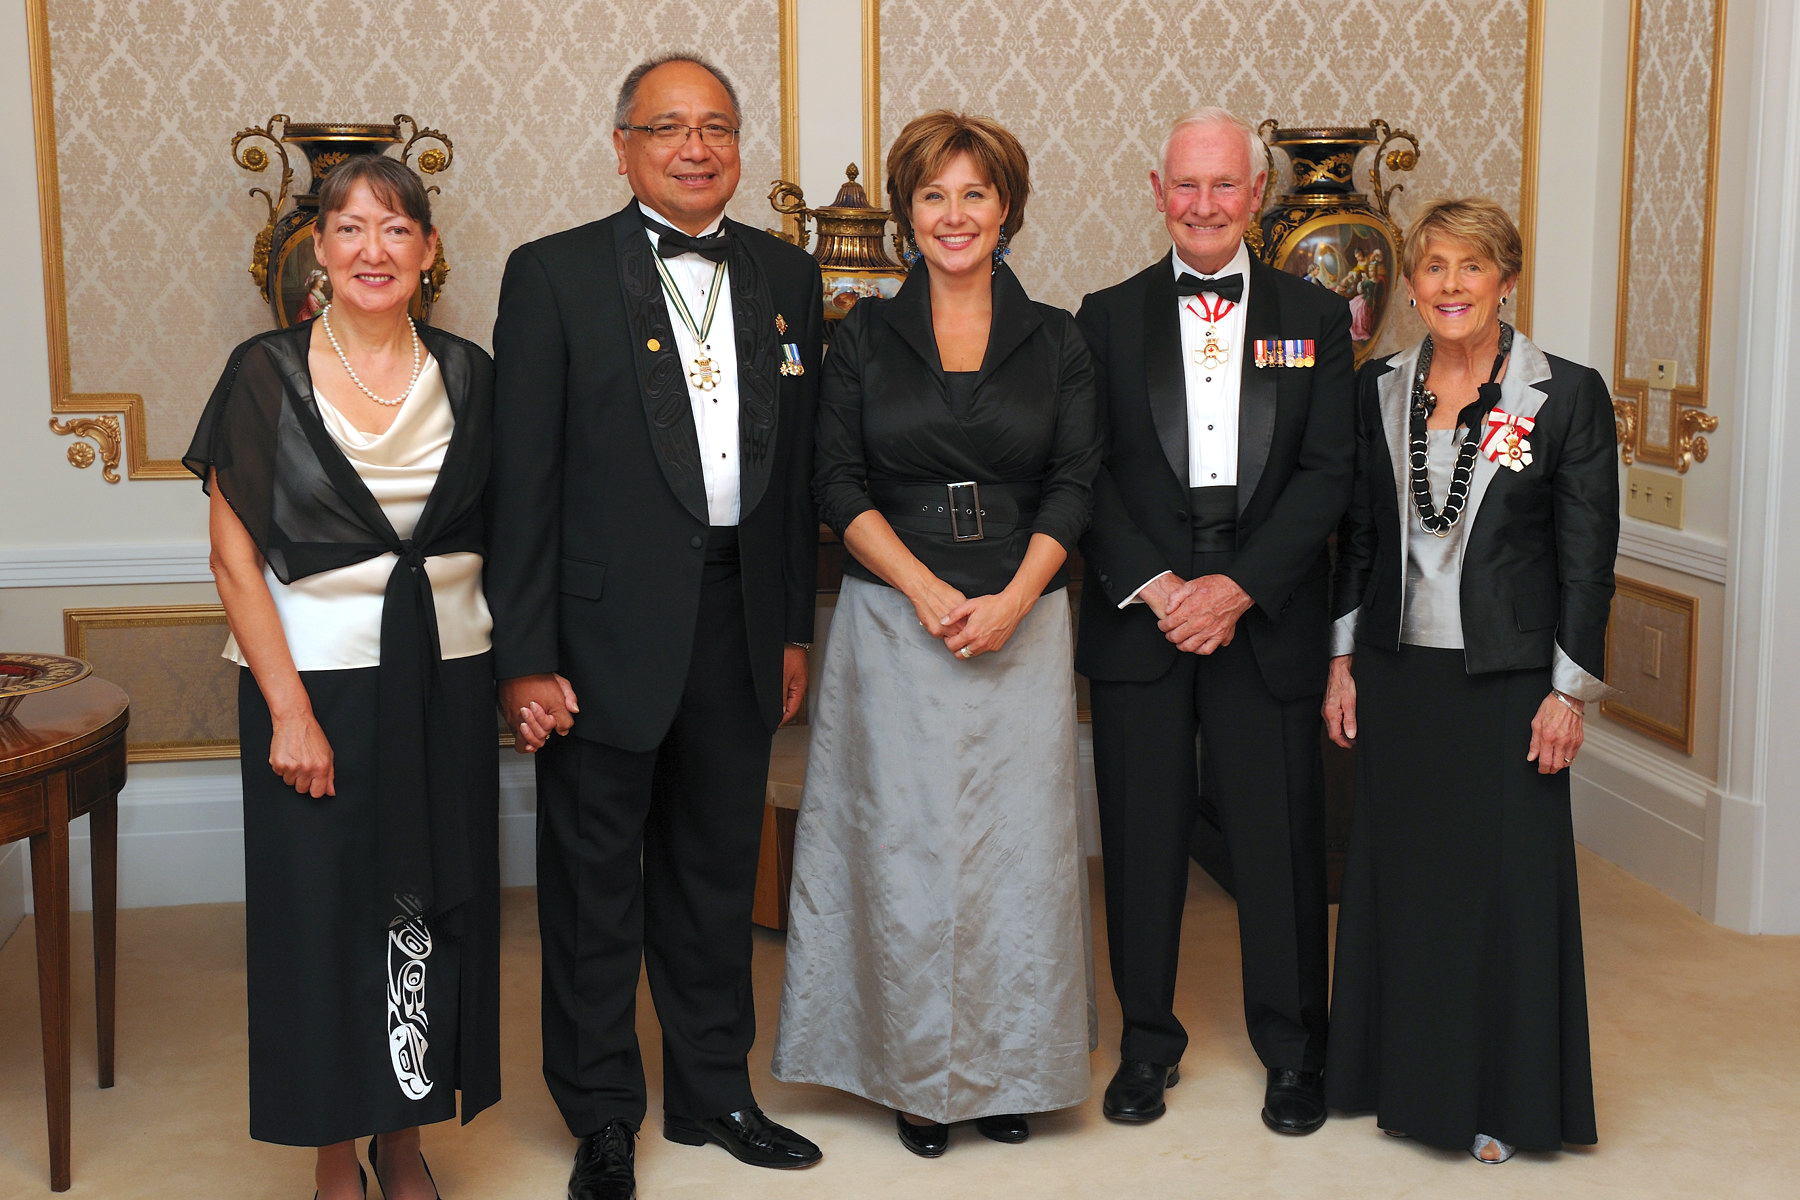 Their Excellencies were guests of honour at a dinner hosted by the Honourable Steven L. Point, Lieutenant Governor of British Columbia, and his spouse, Mrs. Gwendolyn Point, as well as the Honourable Christy Clark, Premier of British Columbia.